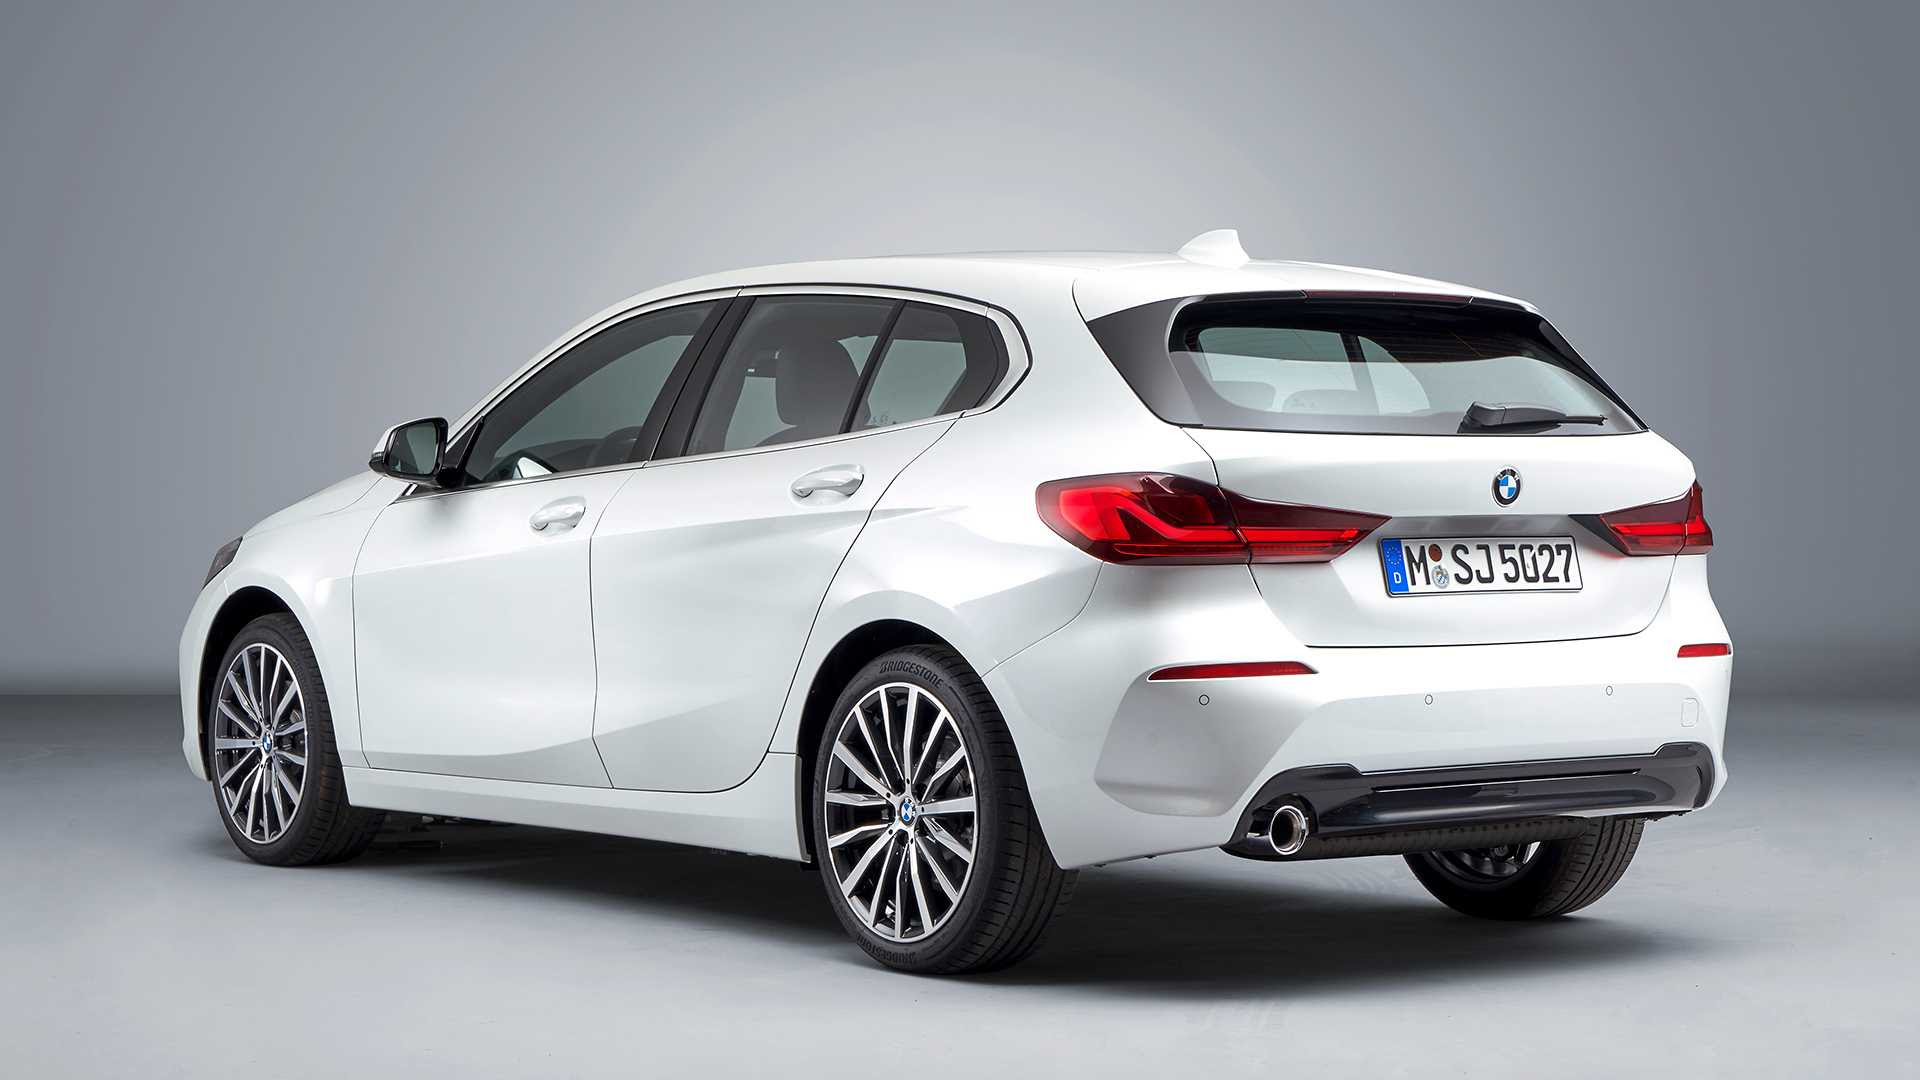 2020 Bmw 1 Series 118i Color Mineral White Metallic Rear Three Images, Photos, Reviews